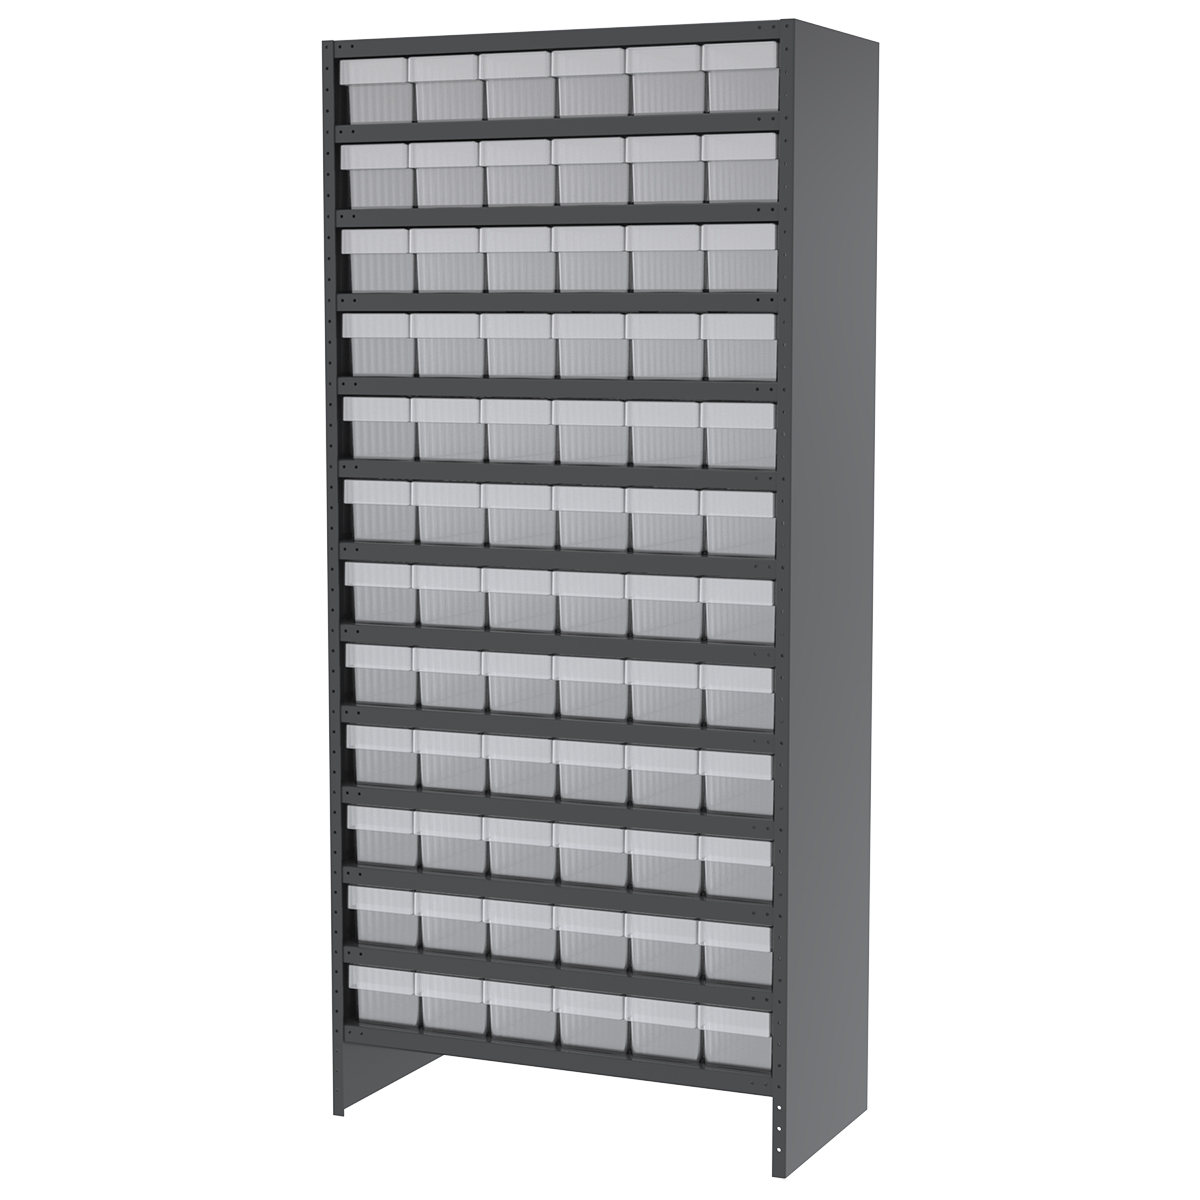 Enclosed Steel Shelving Kit, 18x36x79, 72 AkroDrawers, Gray/Clear.  This item sold in carton quantities of 1.